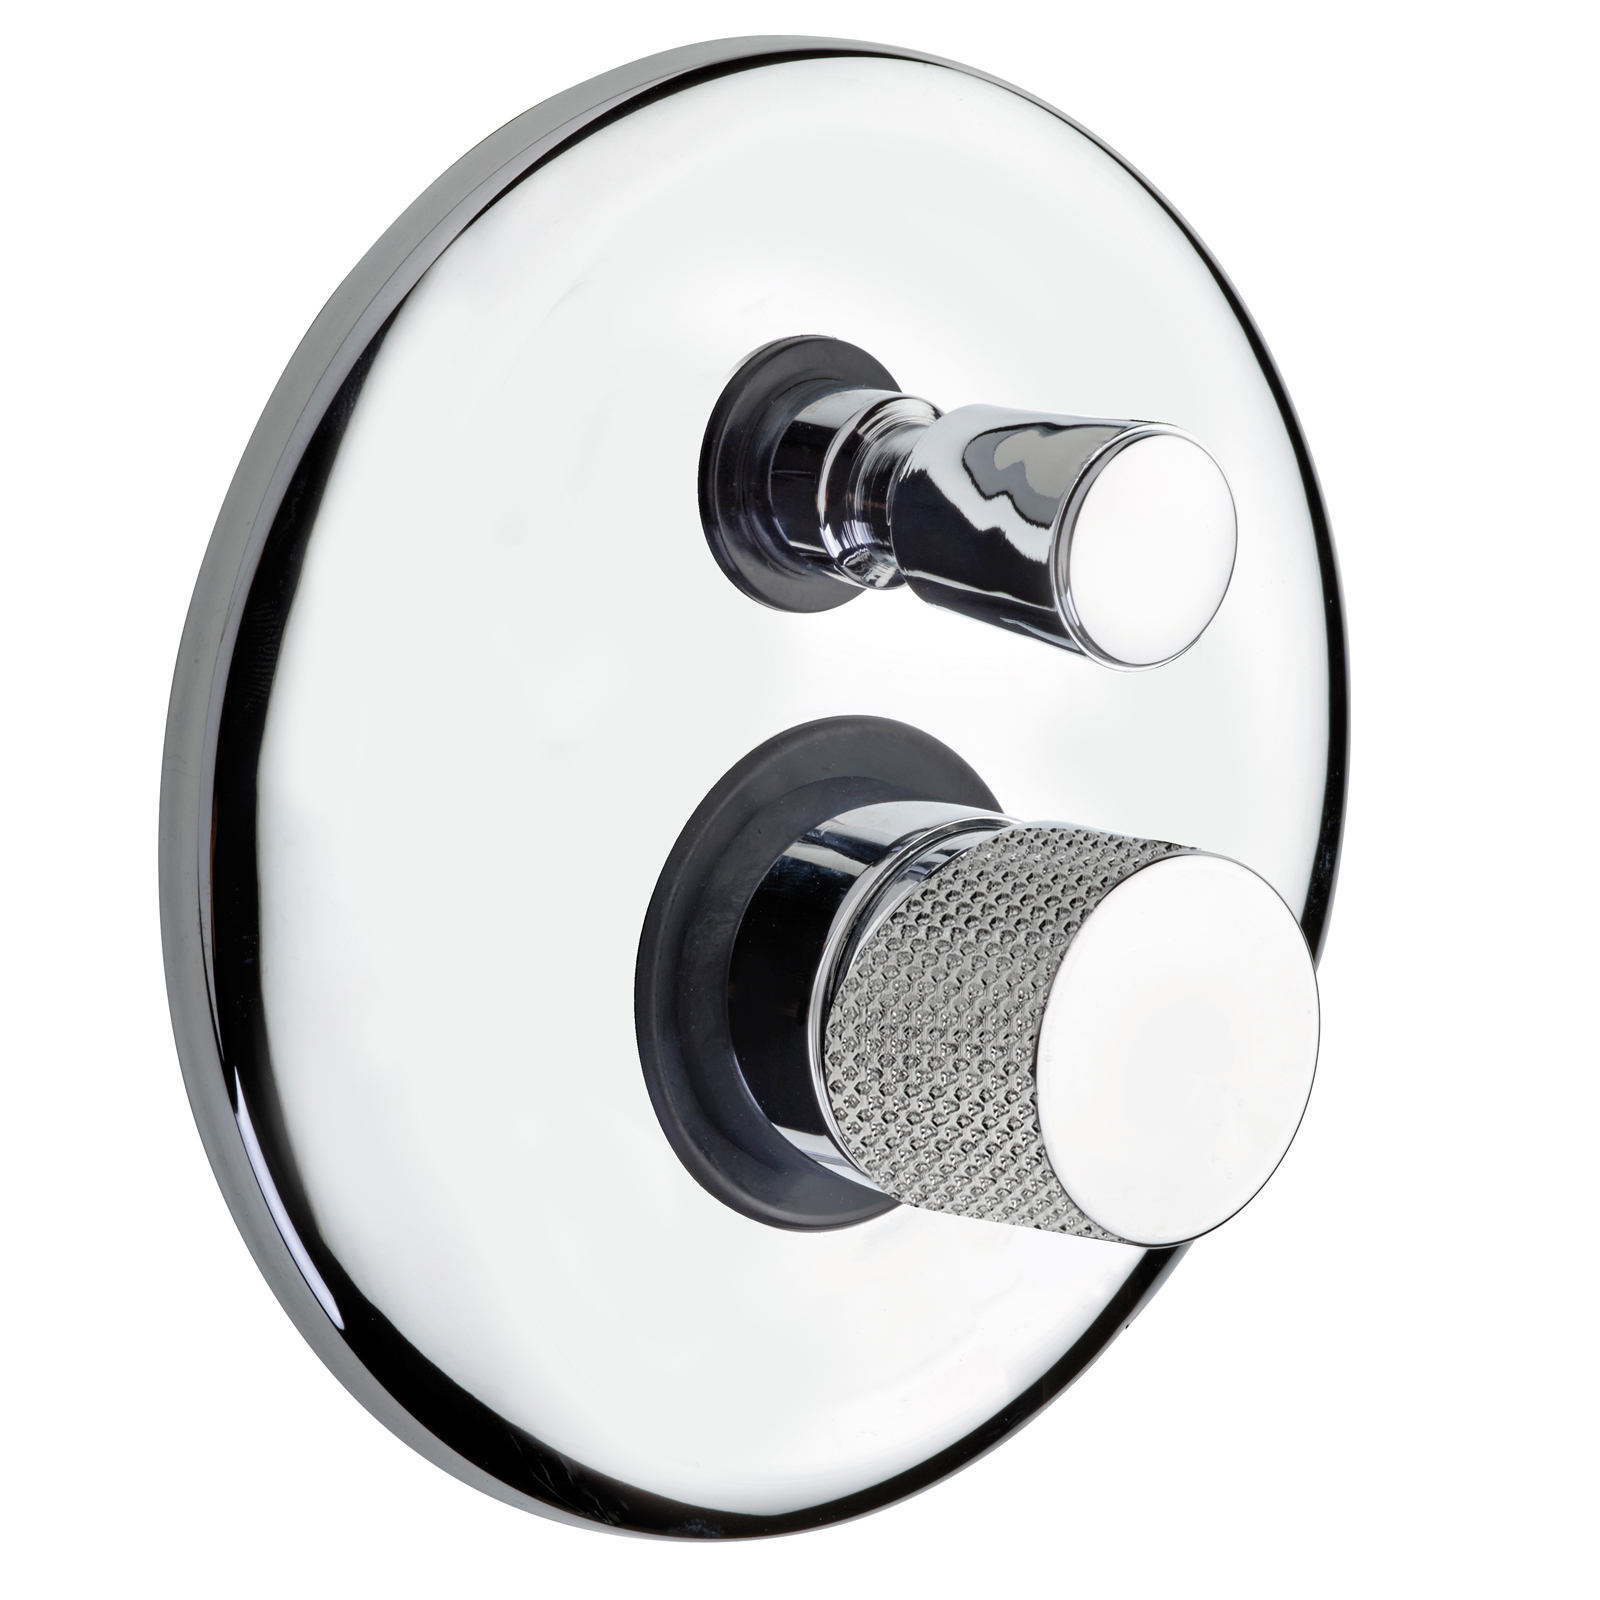 Built-in single control mixer for shower with diverter